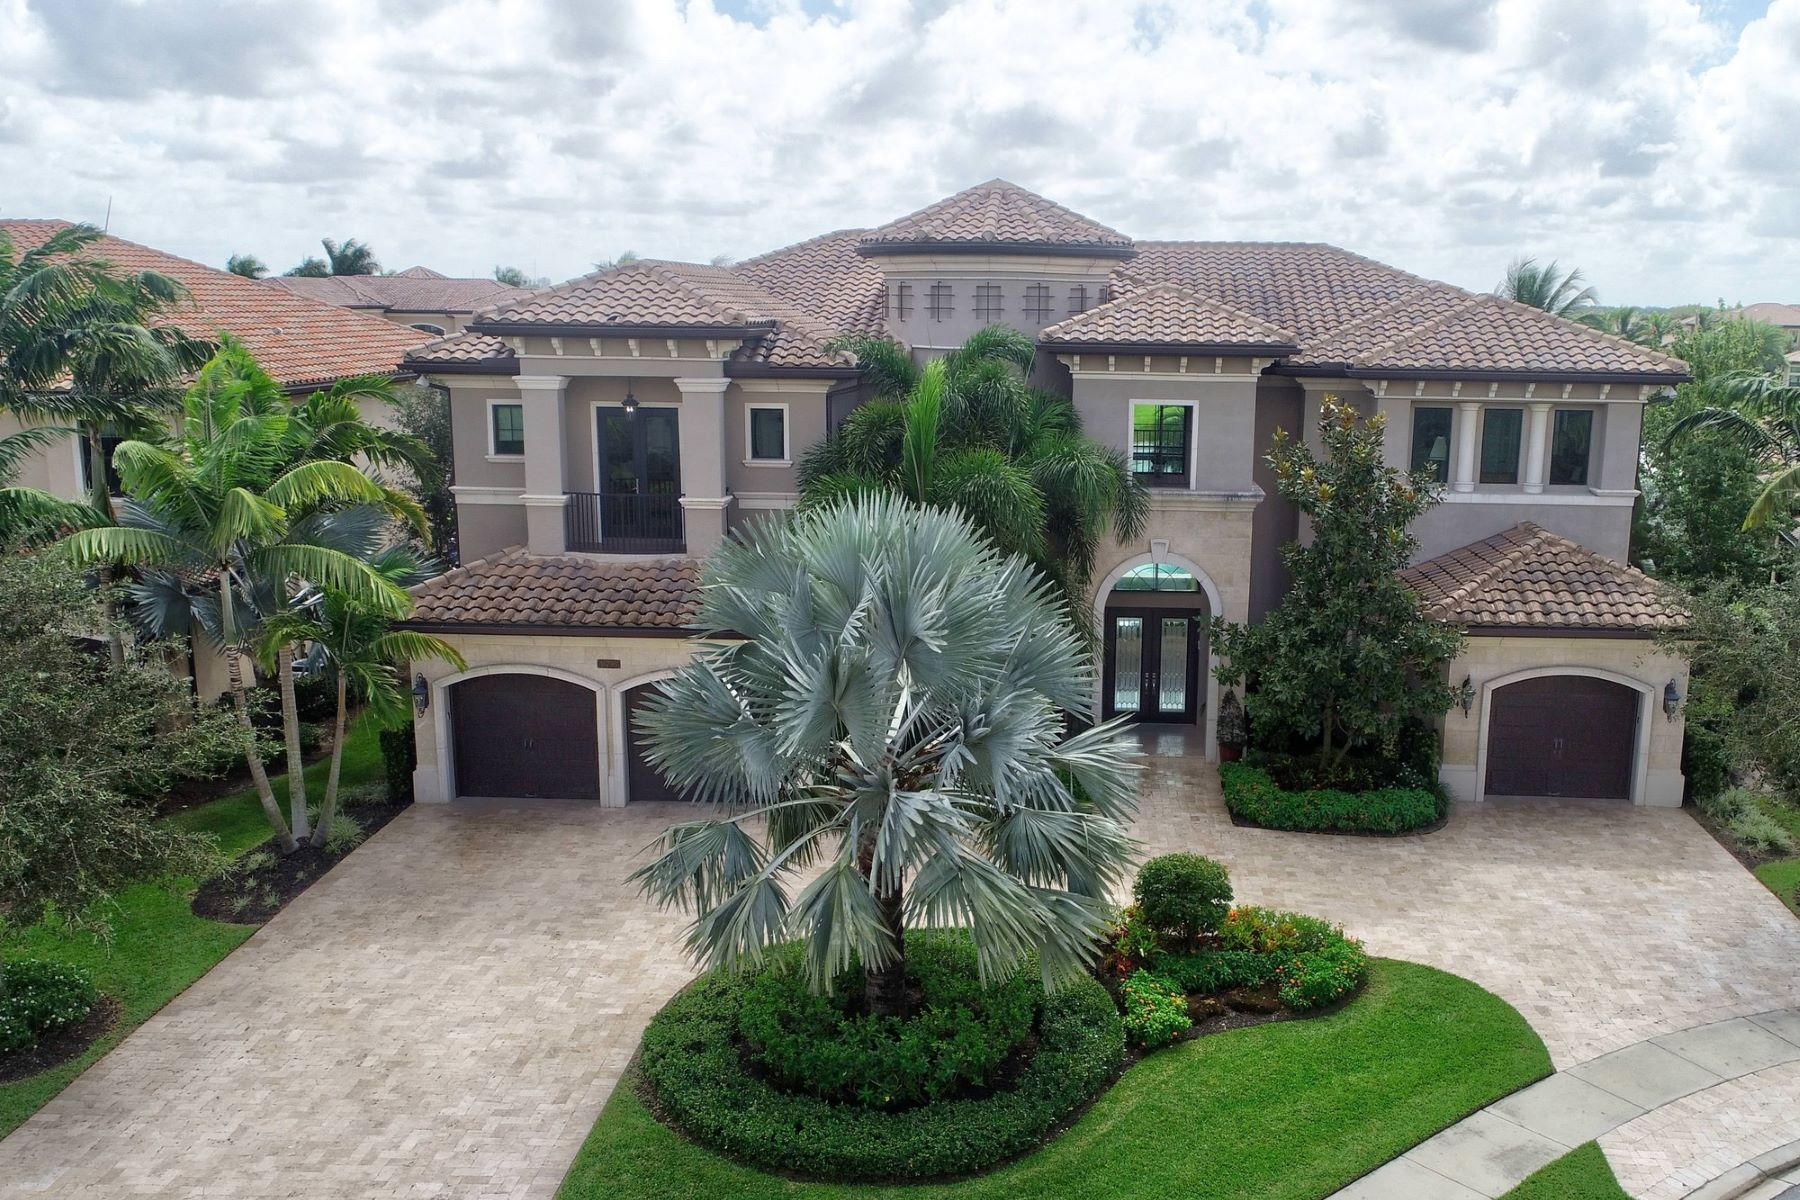 Single Family Home for Active at 16793 Crown Bridge Dr , Delray Beach, FL 33446 16793 Crown Bridge Dr Delray Beach, Florida 33446 United States